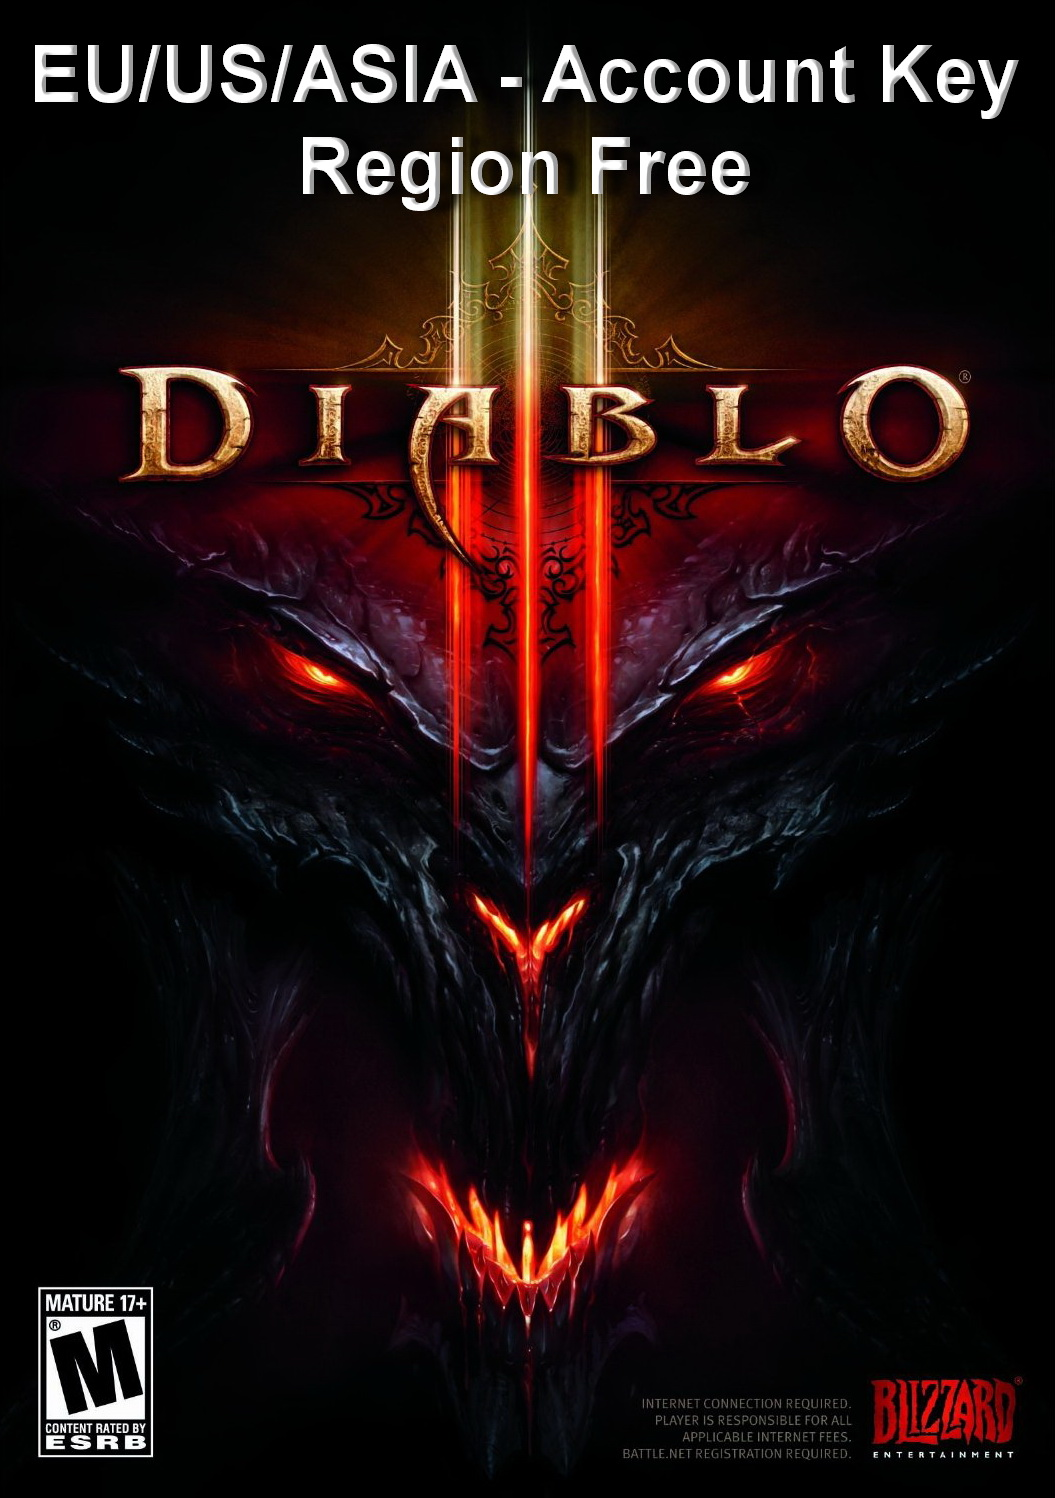 DIABLO 3 III ACCOUNT KEY (EU/US/ASIA/RU)